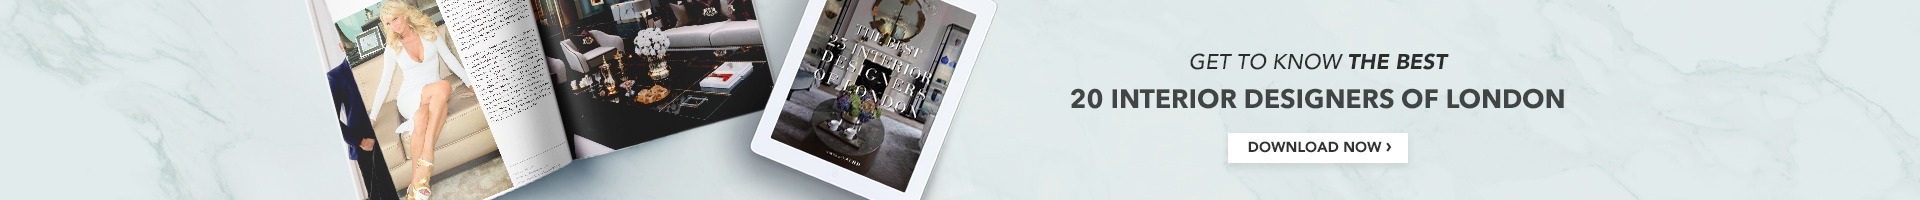 Ebook - 25 Interior Designers of London